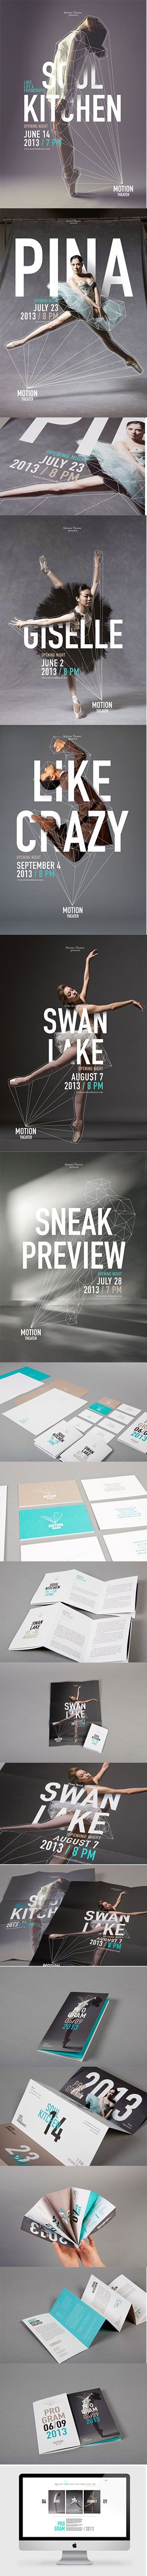 Motion Theater promotion design: flyer, Poster, Homepage | typography / graphic design: Caroline Grohs @ behance |